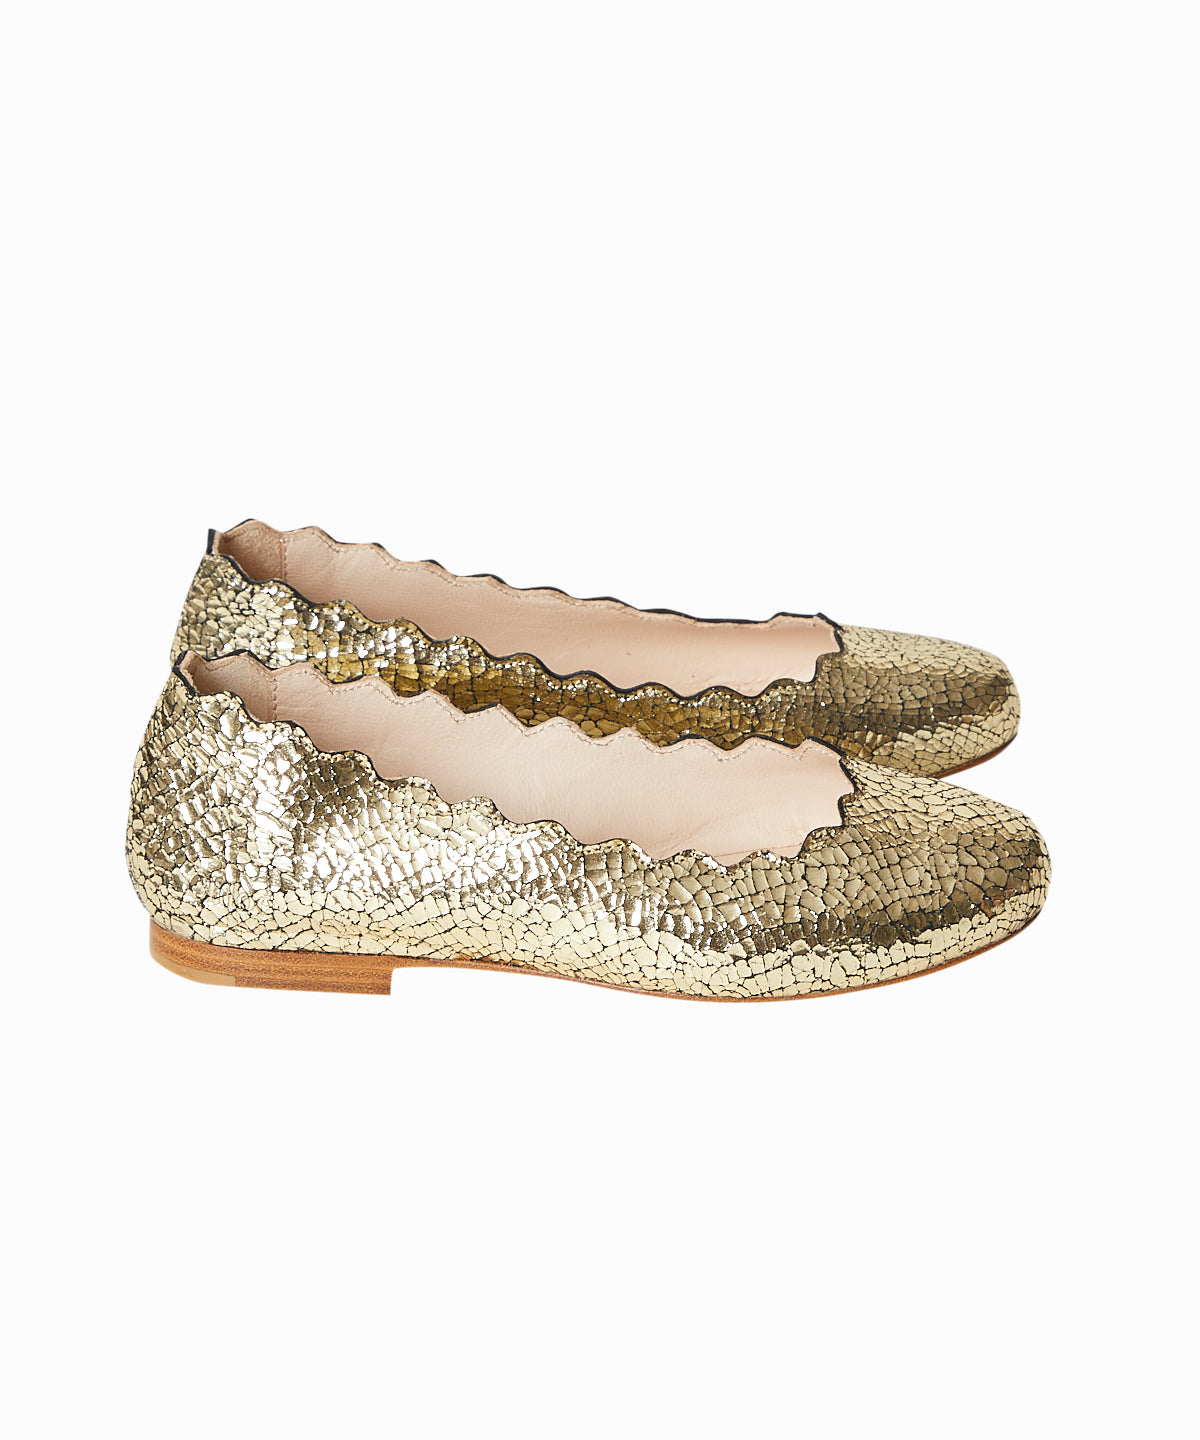 Scalloped Metallic Ballet Slippers